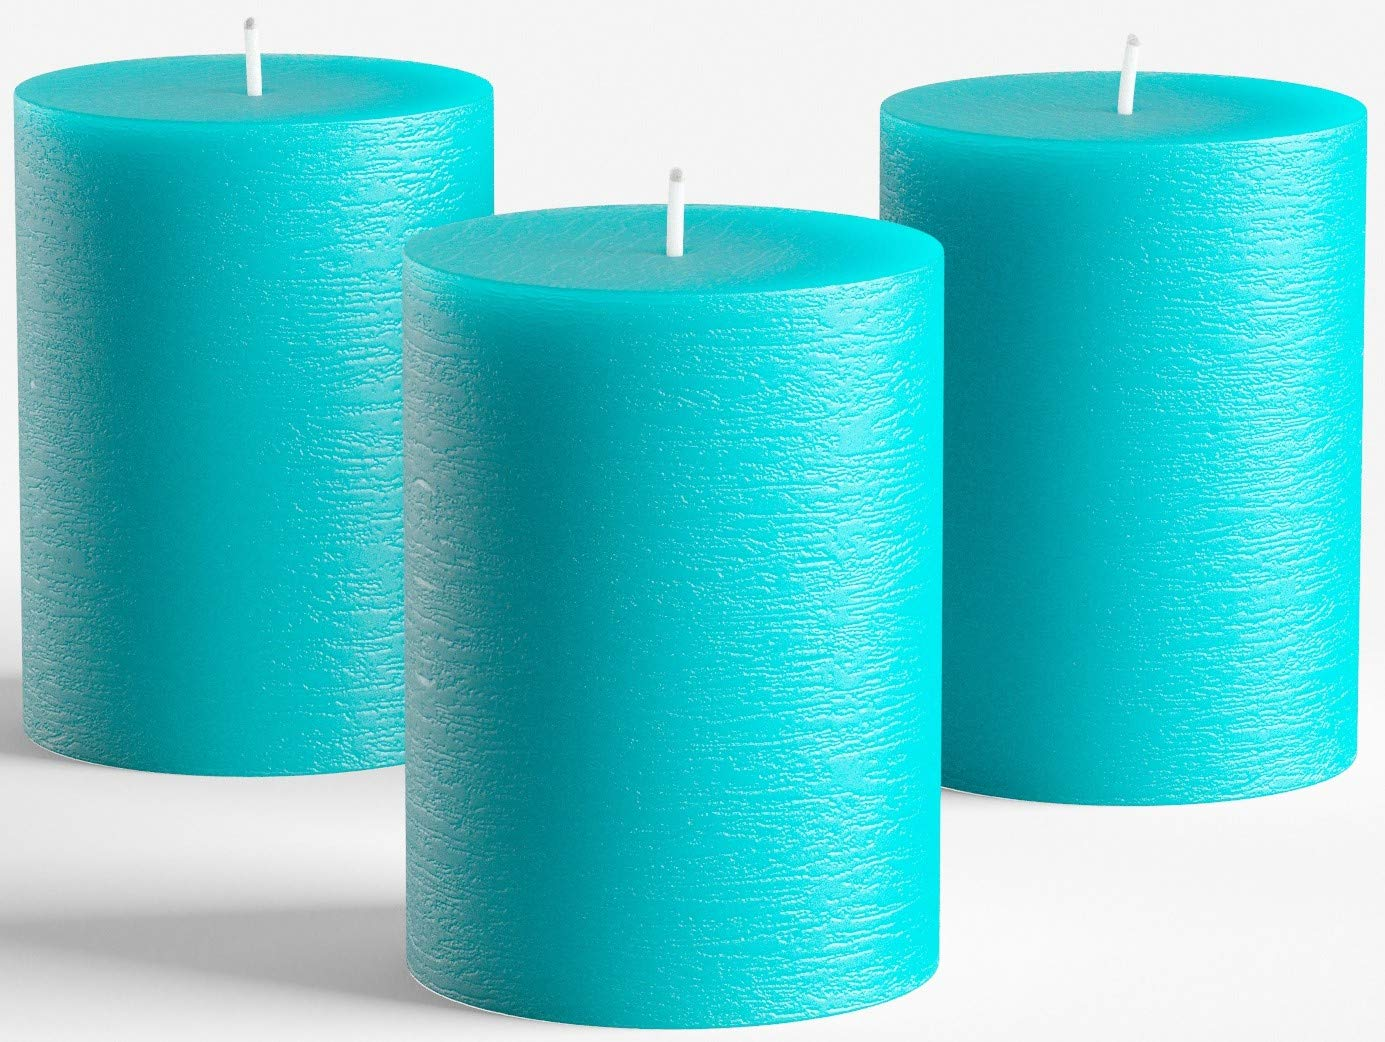 "Set of 3 Turquoise/Teal Pillar Candles 3"" x 4"" Unscented Fragrance-Free for Weddings, Church, Home Decoration, Restaurants, Spa, Smokeless Cotton Wick"